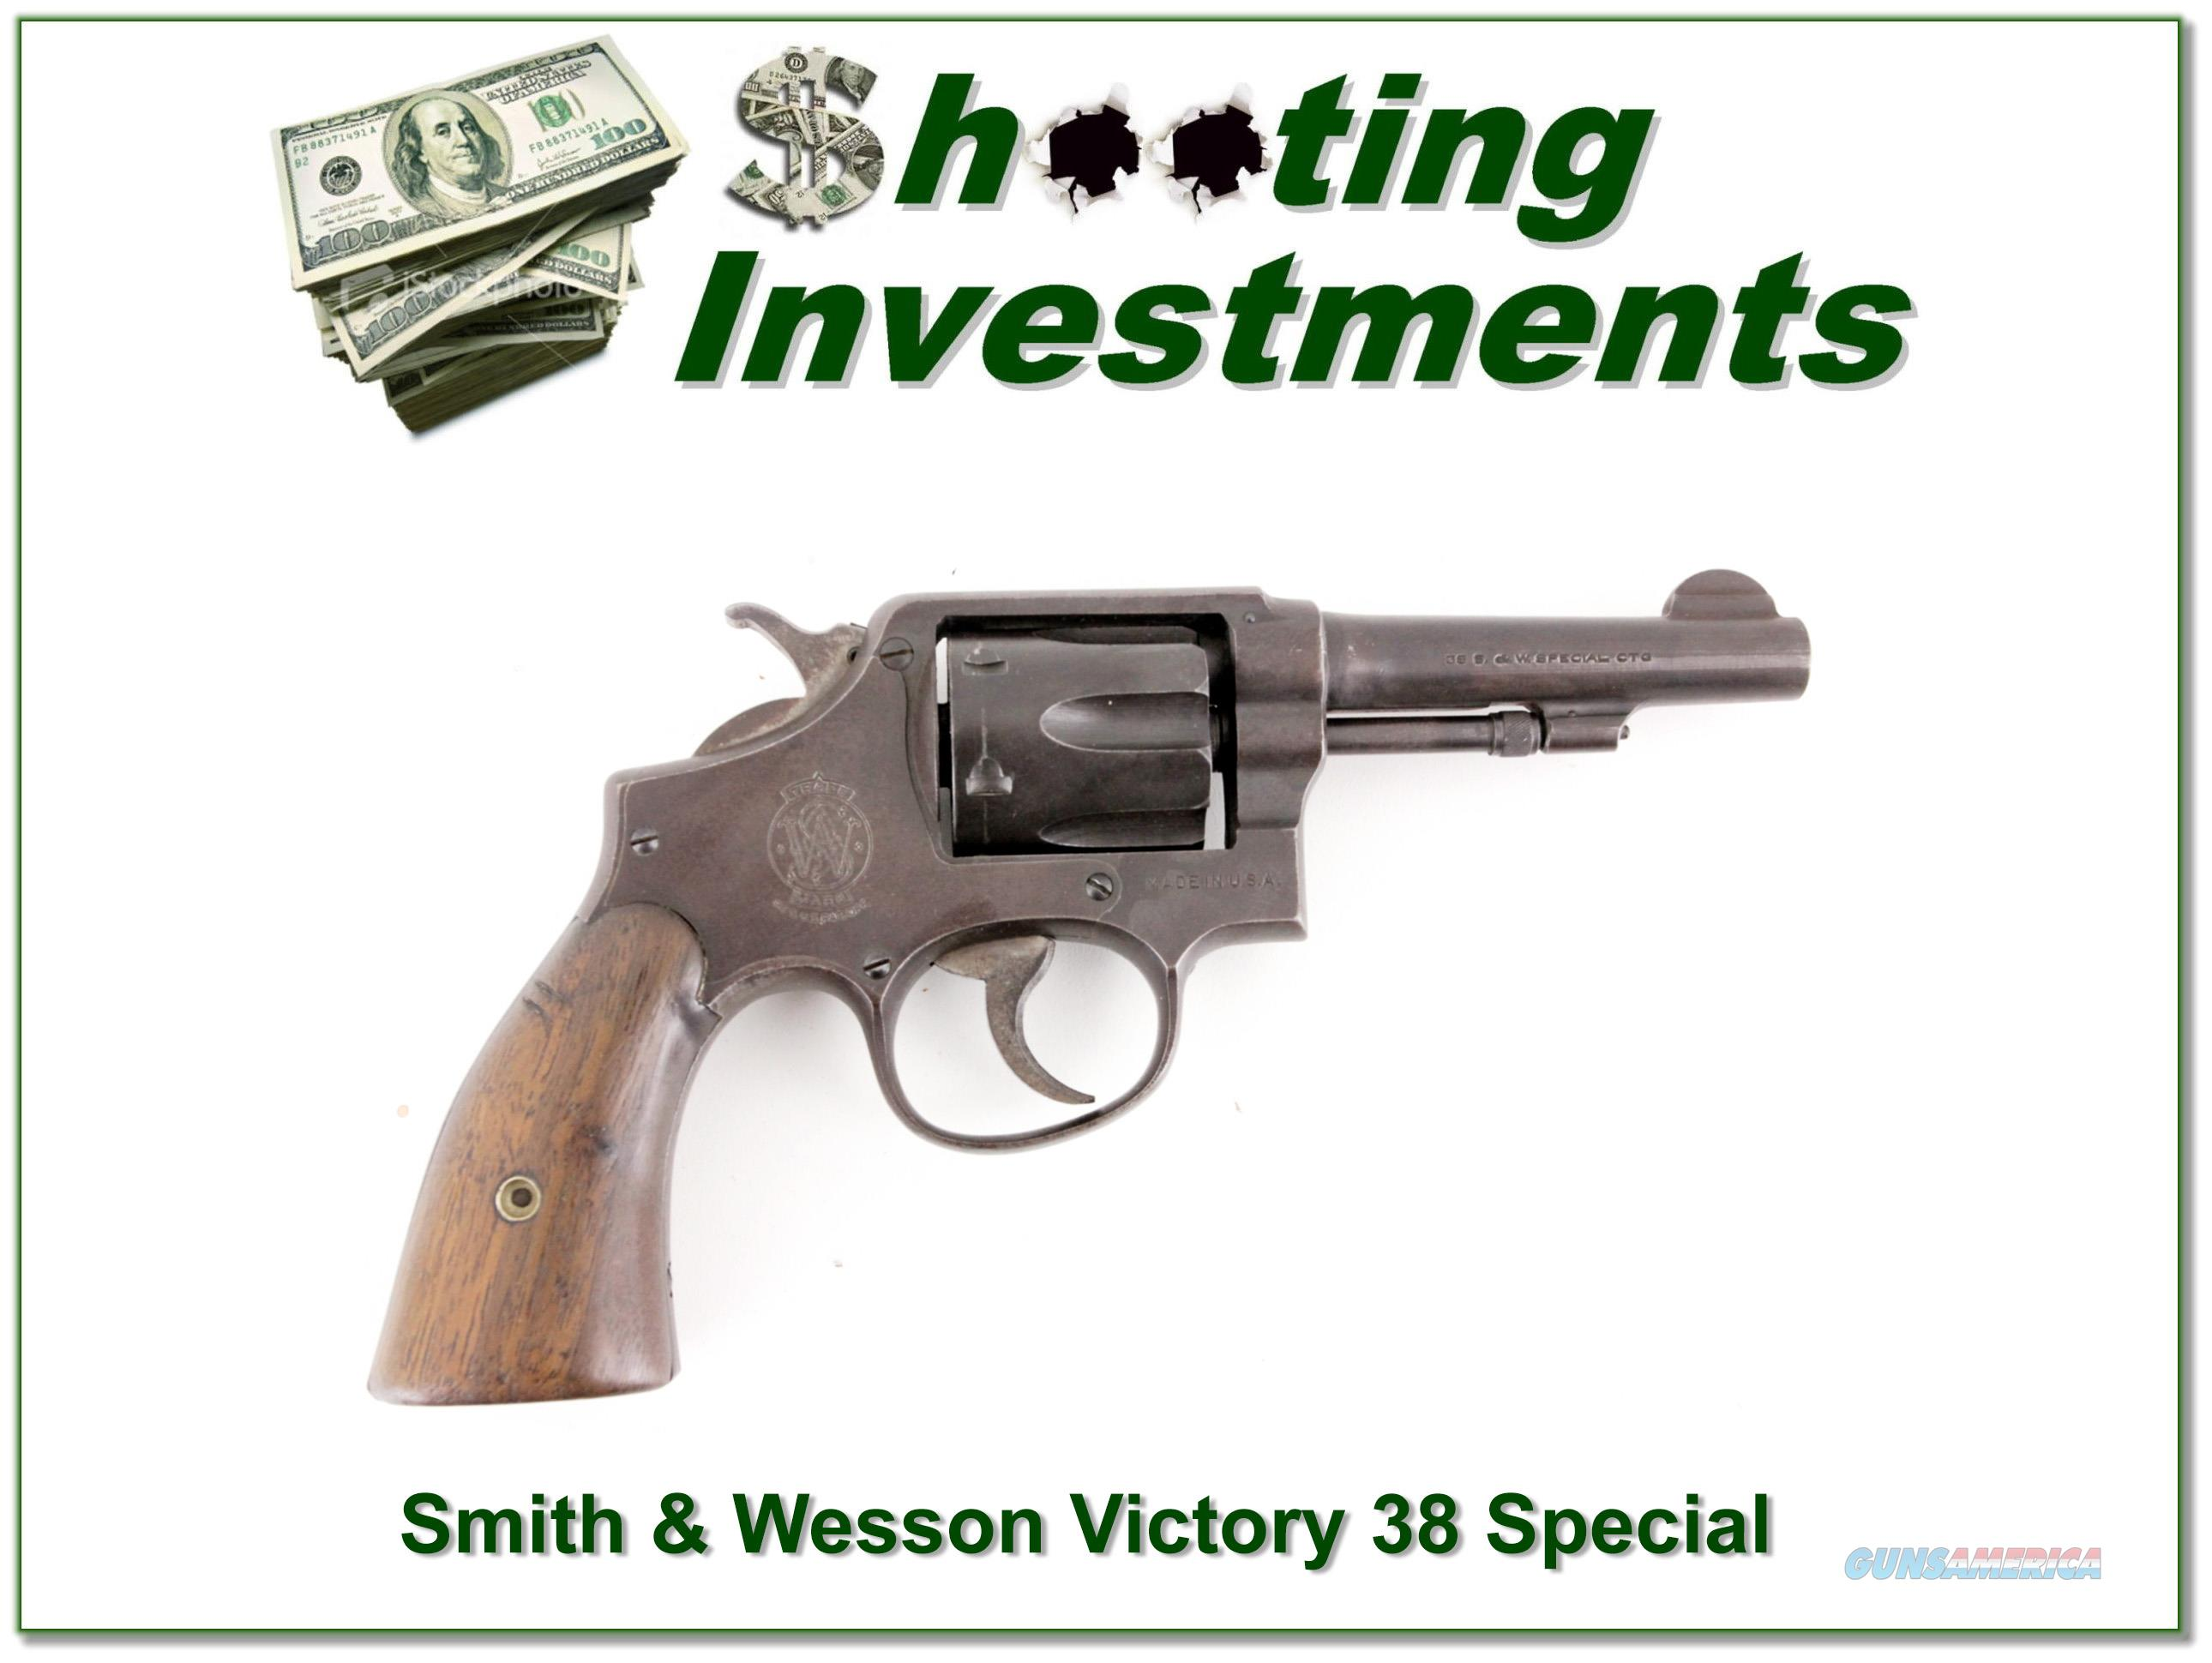 Smith & Wesson Victory 38 Special  Guns > Pistols > Smith & Wesson Revolvers > Full Frame Revolver